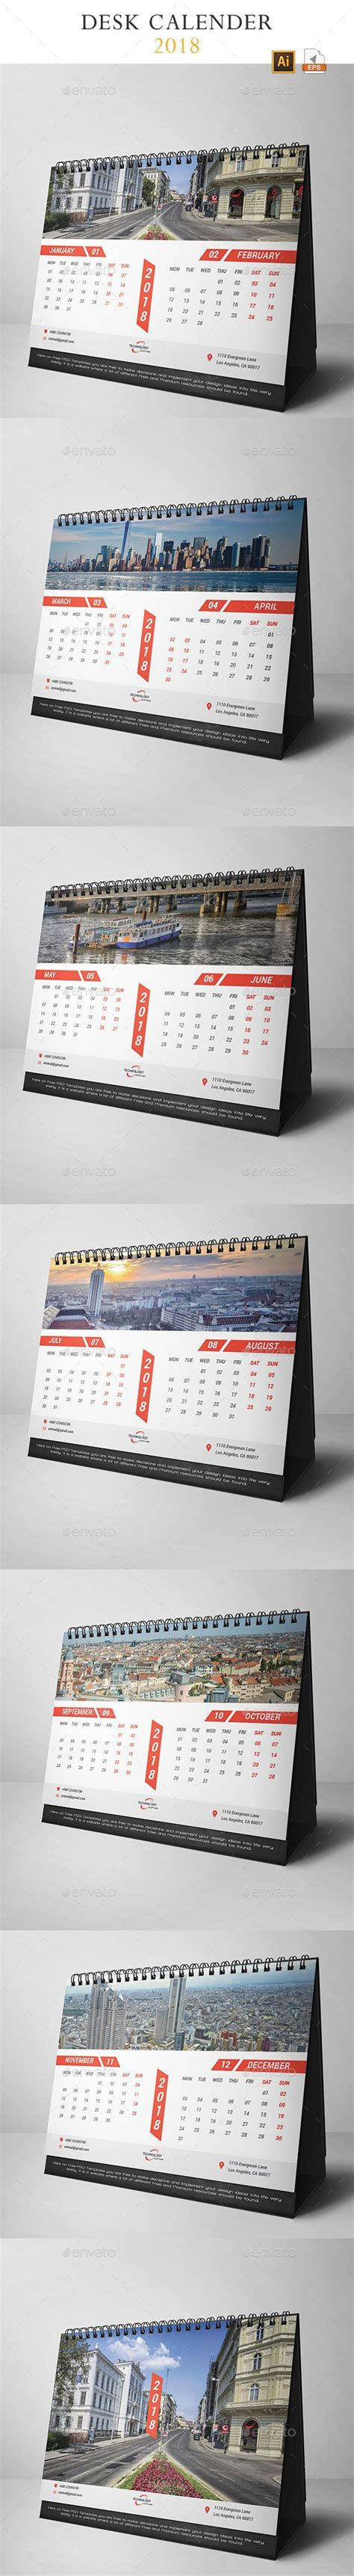 how to make desk calendar in illustrator best 25 desk calendars ideas on diy desk